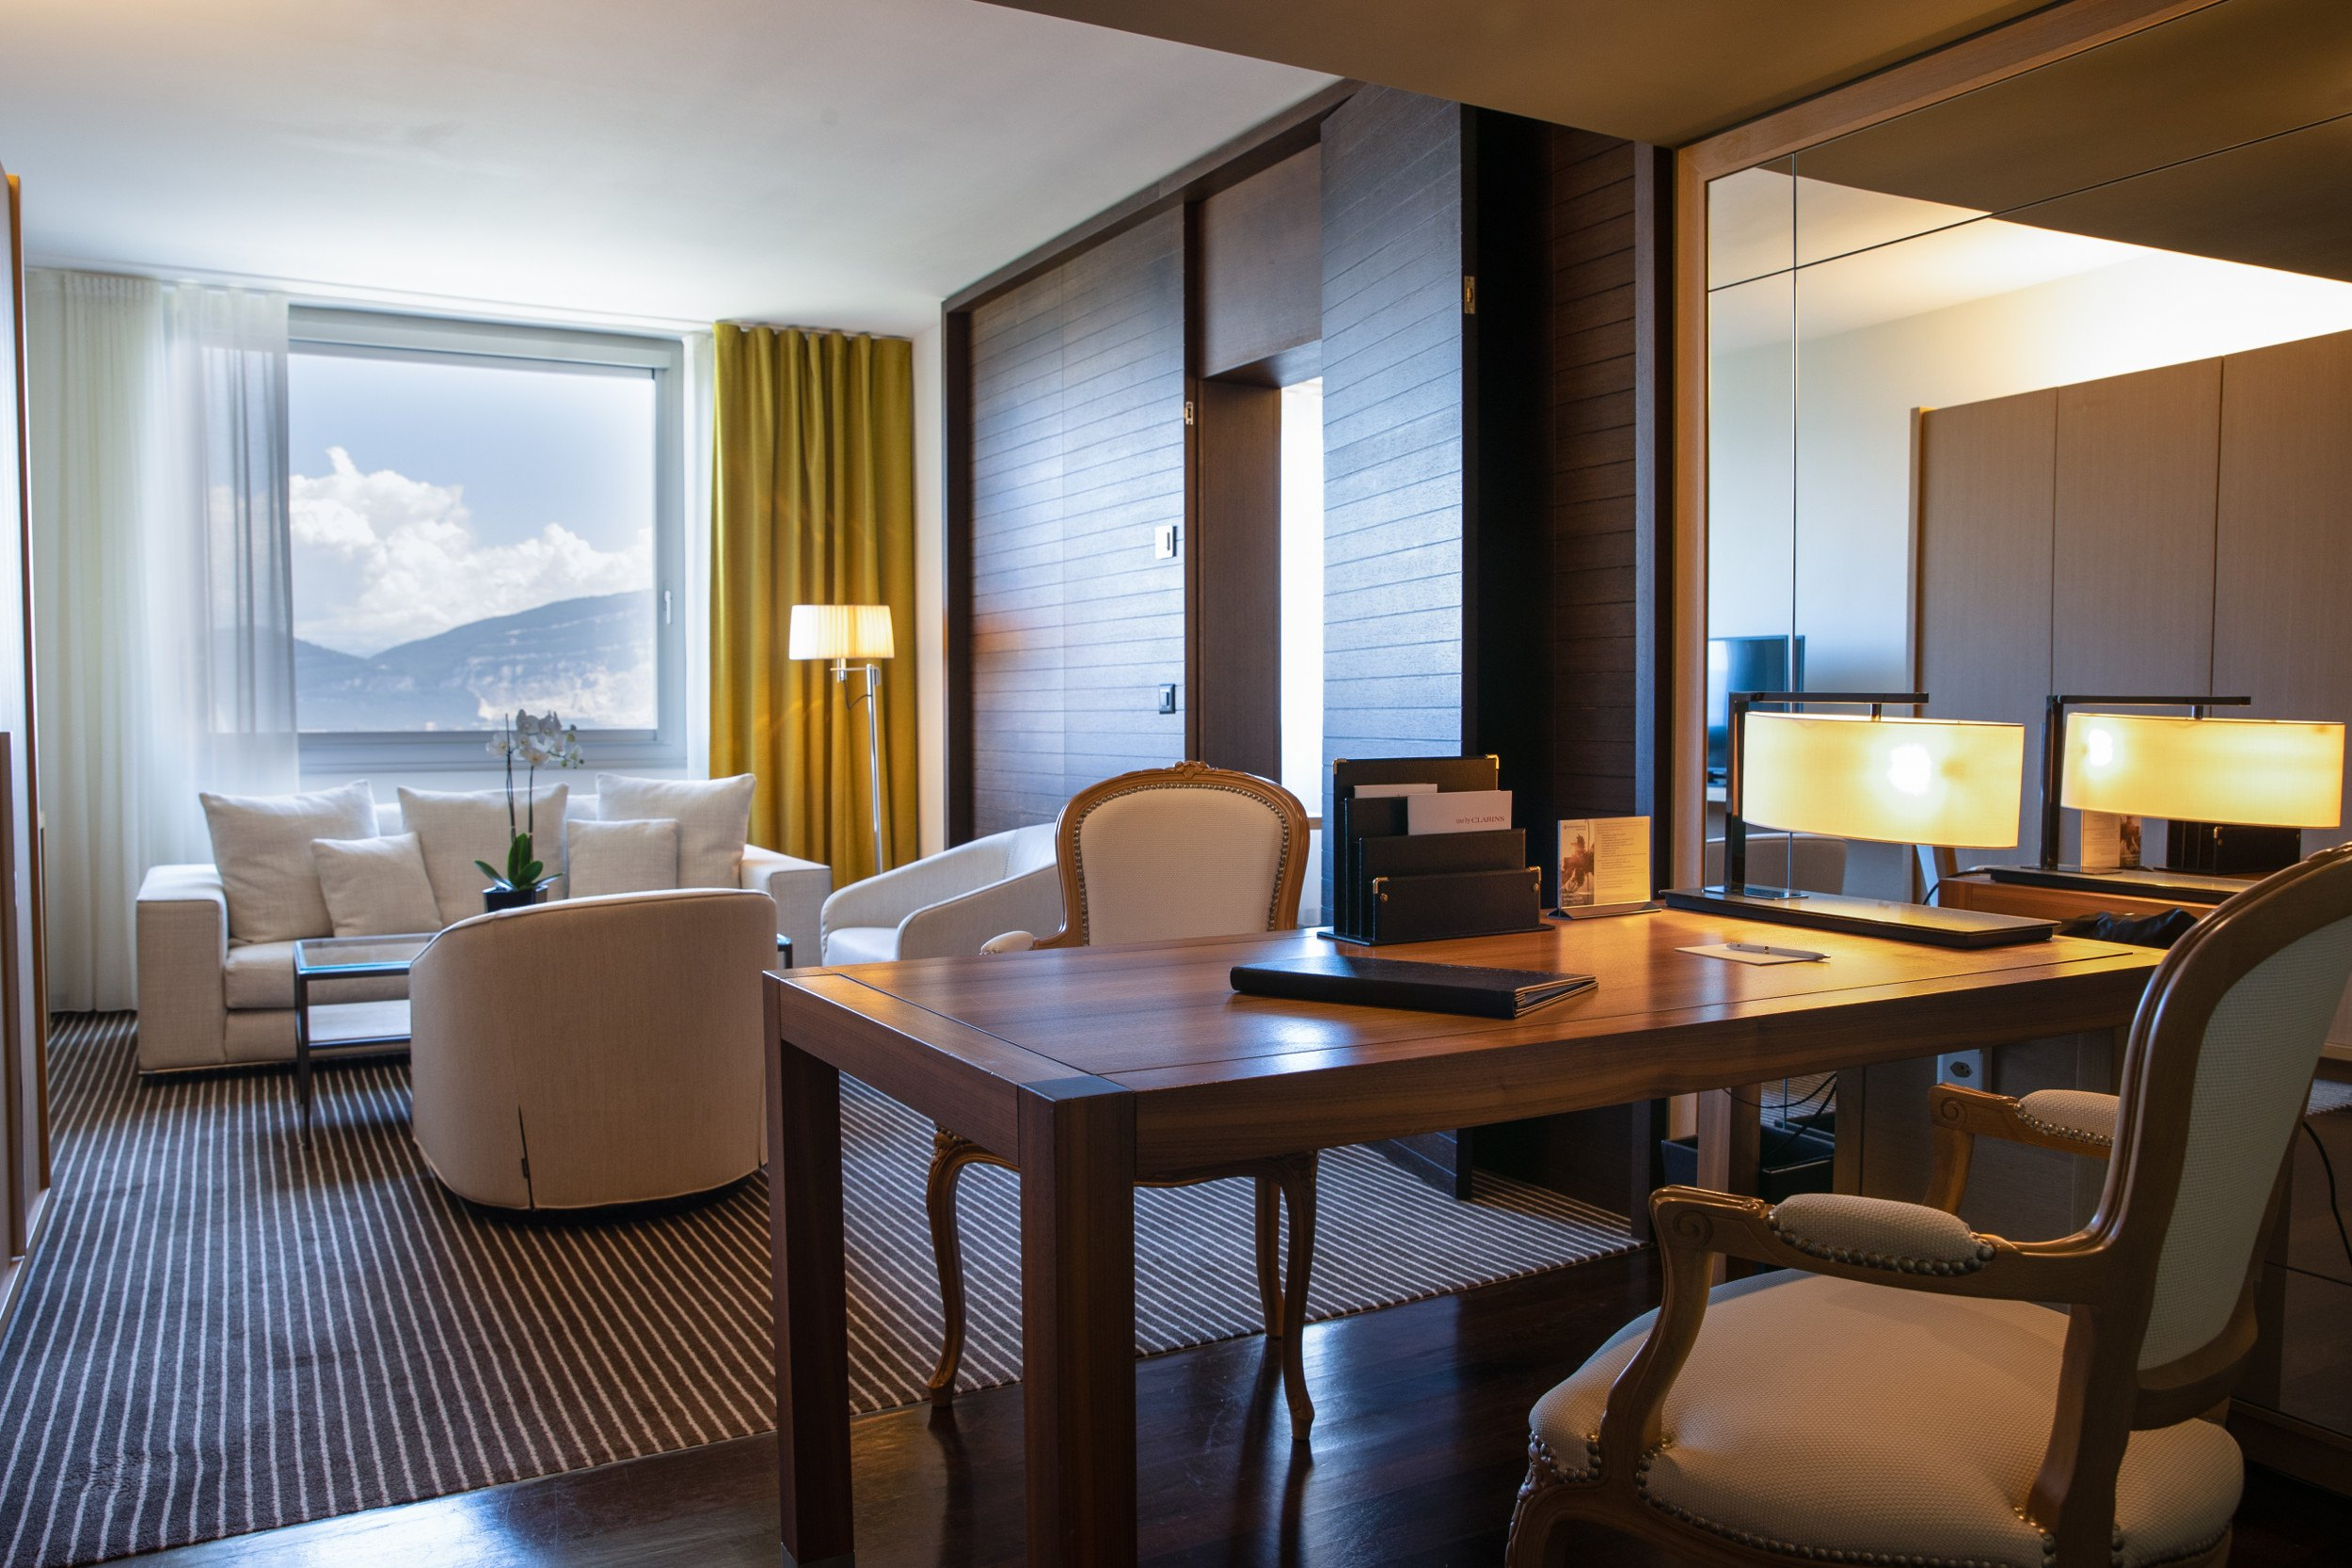 InterContinental-Geneva-Hotel-Executive-room-3